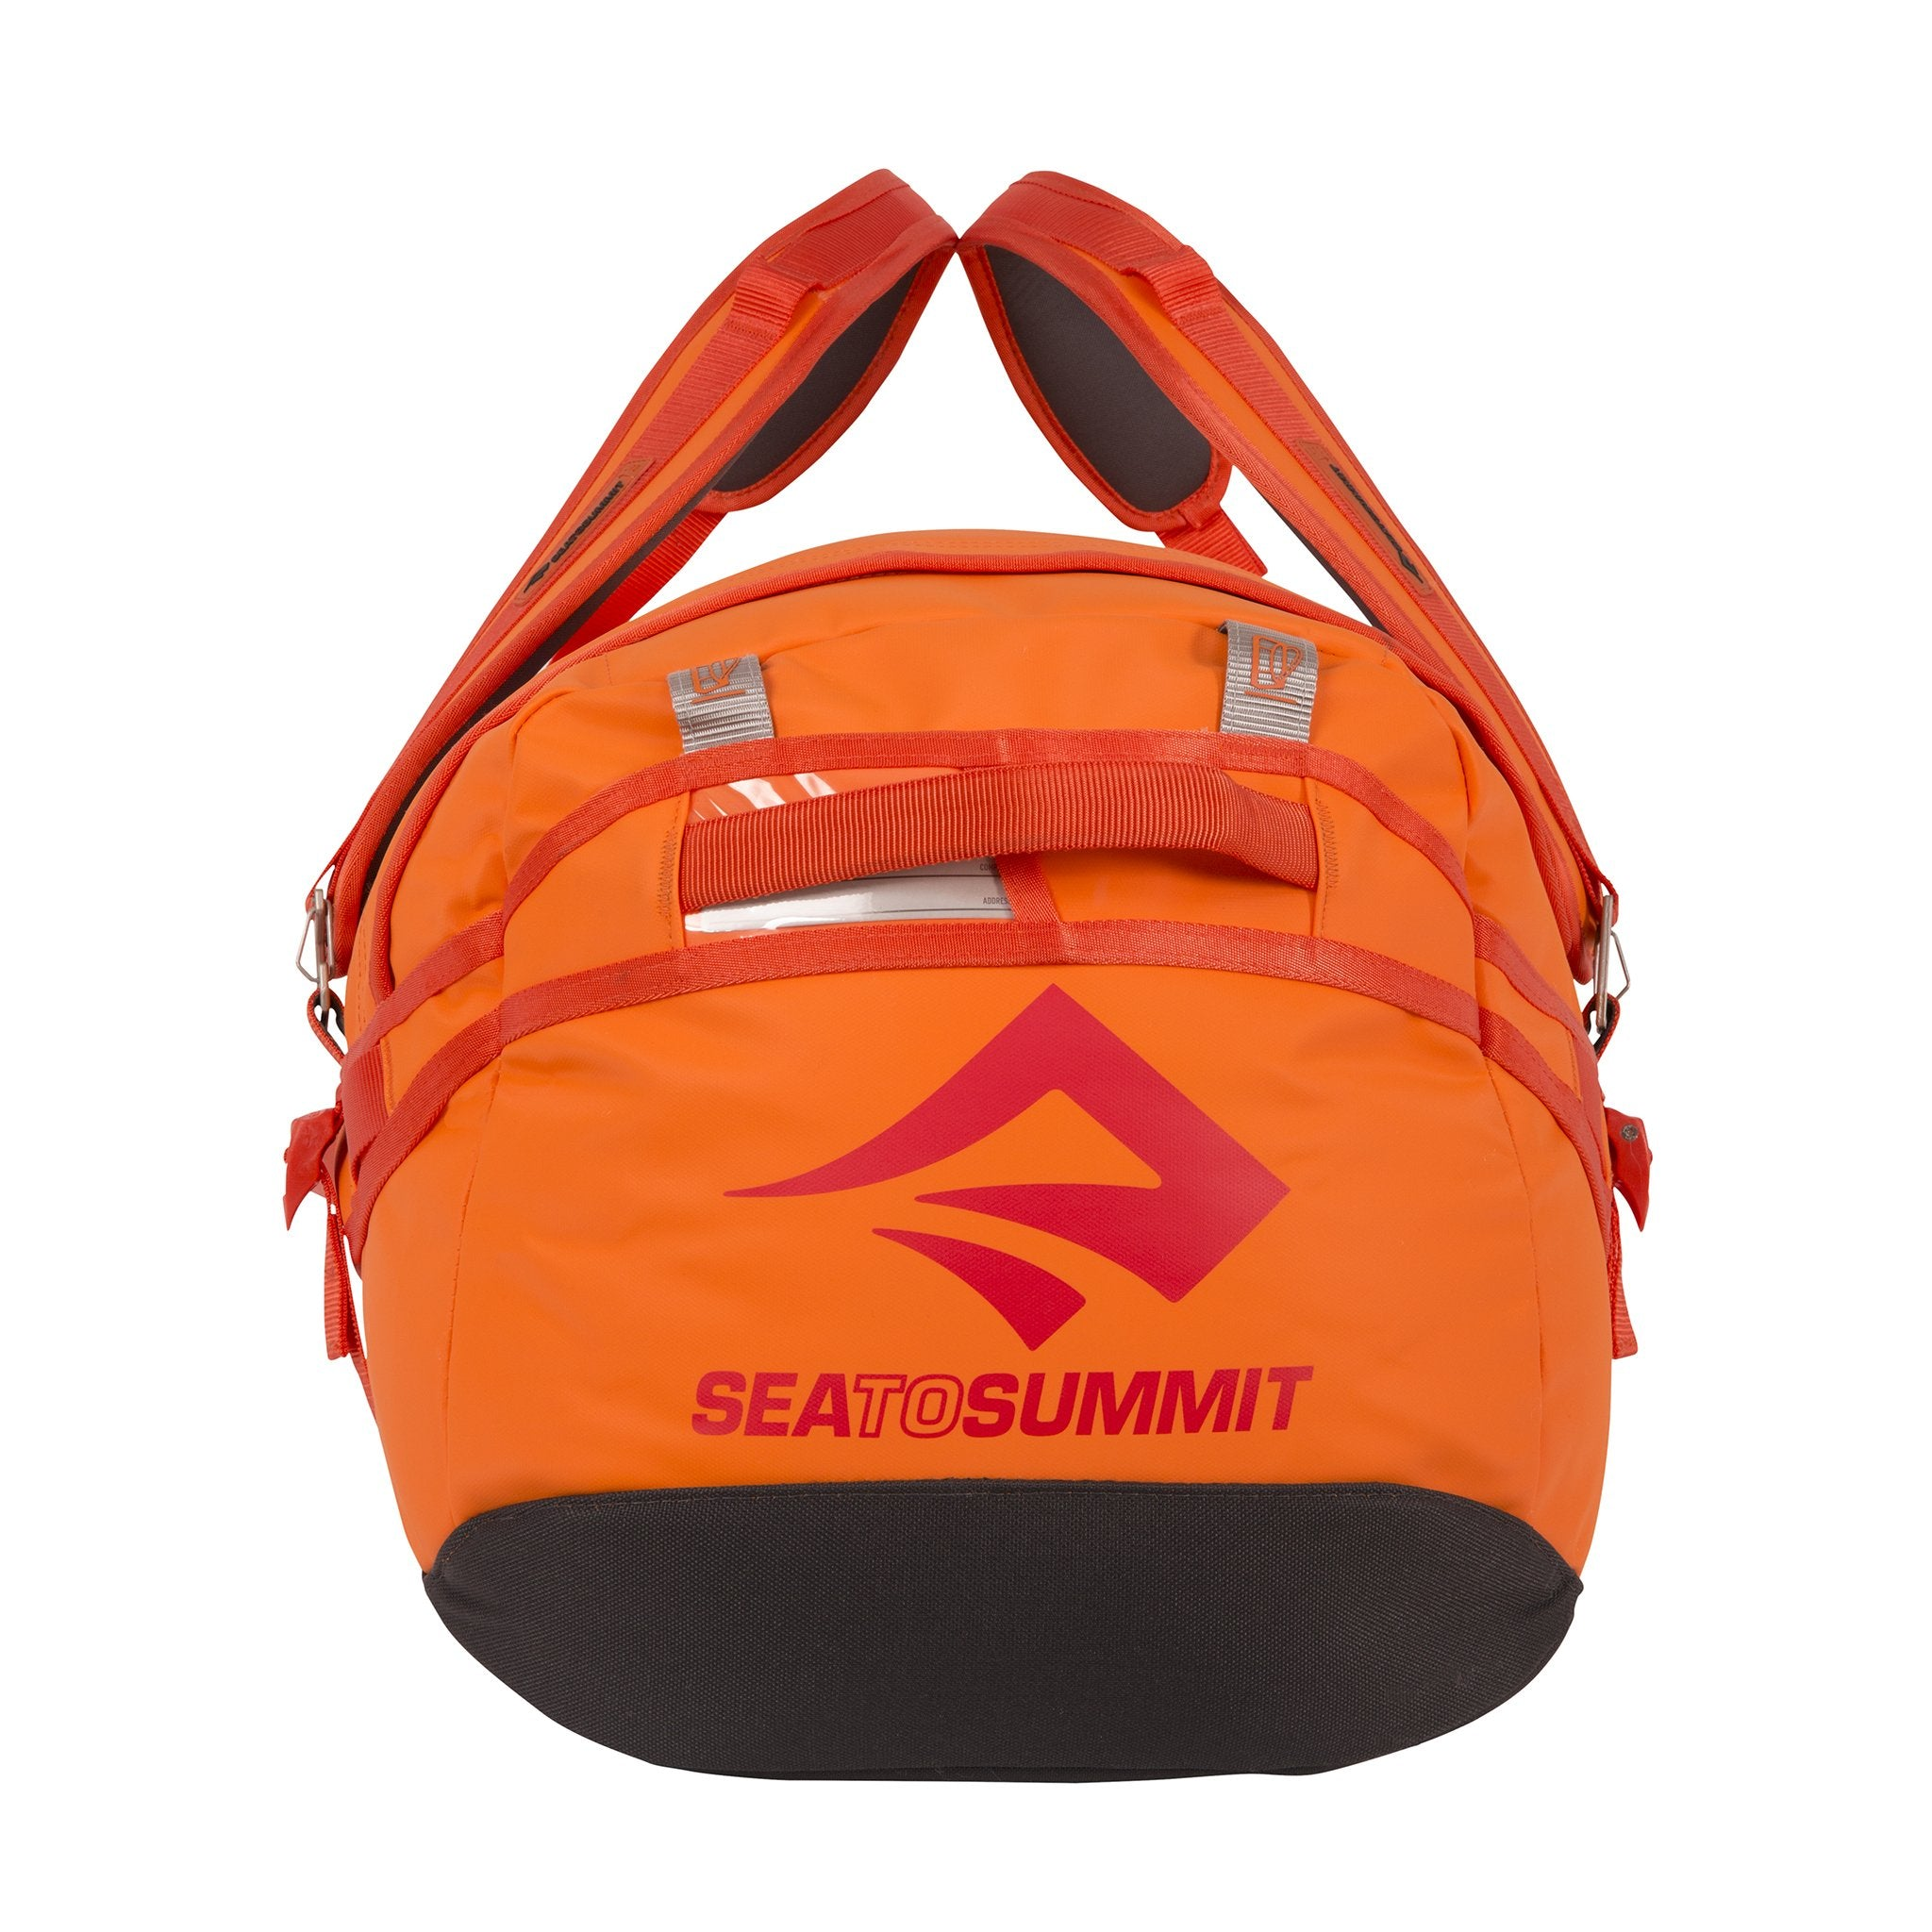 Sea to Summit Duffel bag with backpack straps _ Orange